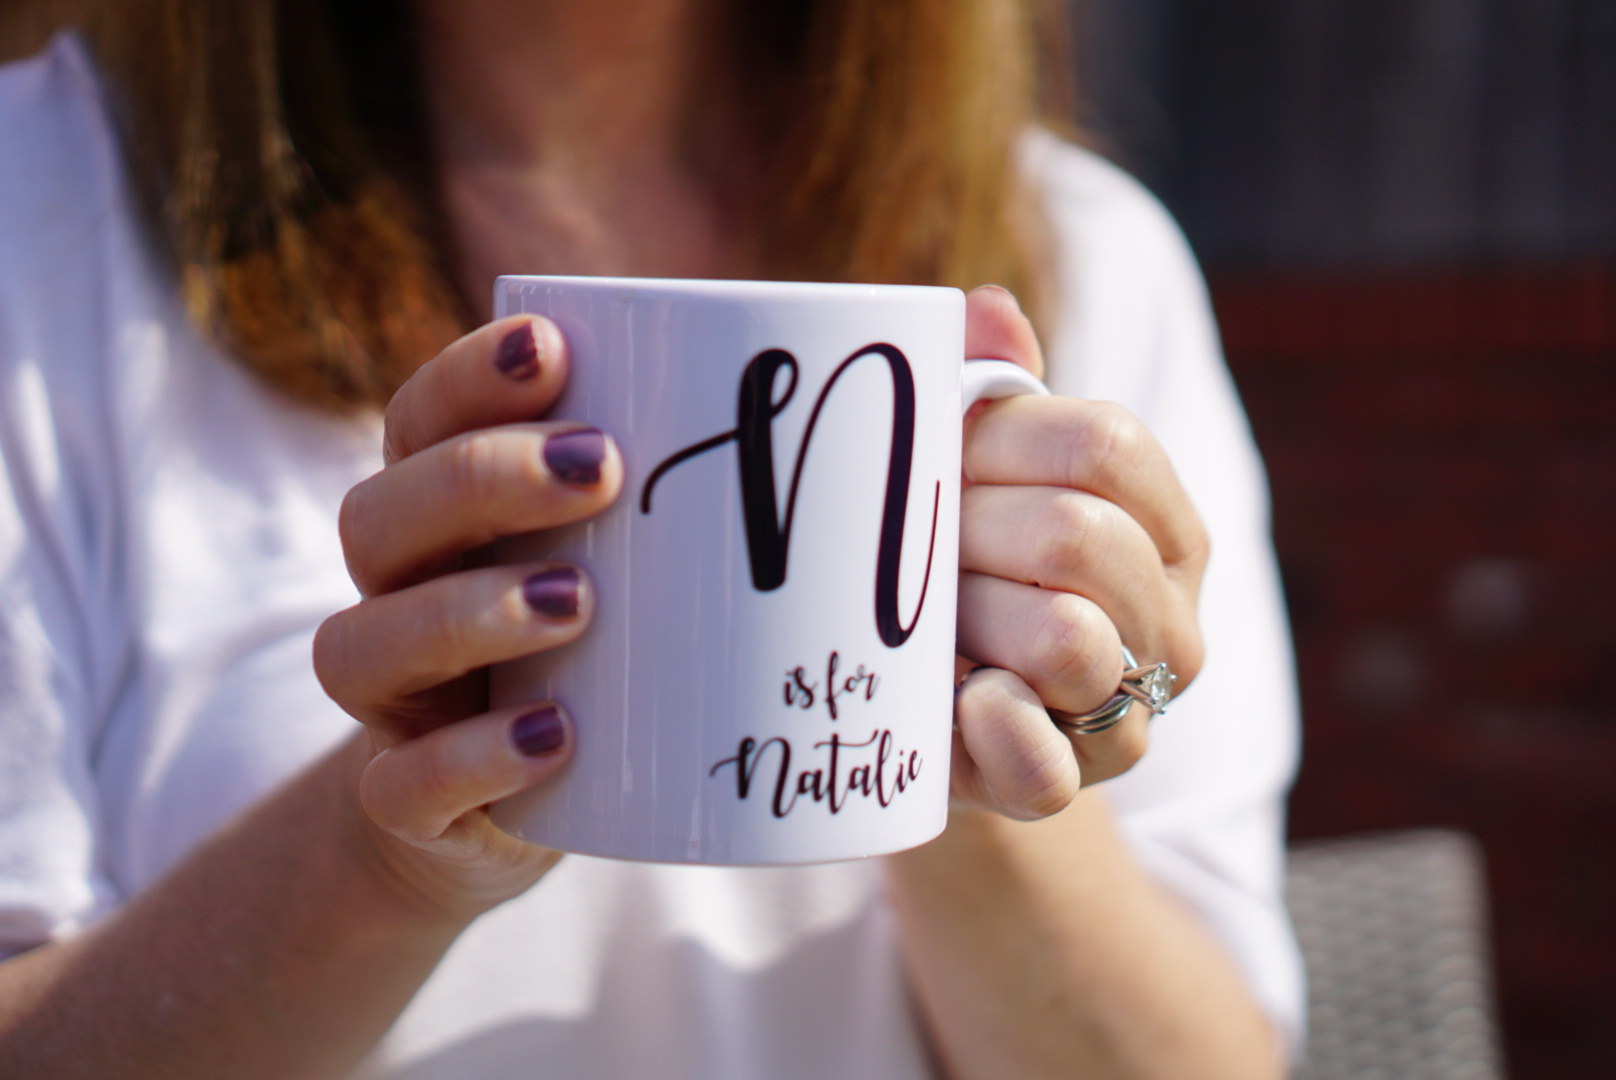 https://www.ryman.co.uk/ryman-personalised-initial-and-name-mug#